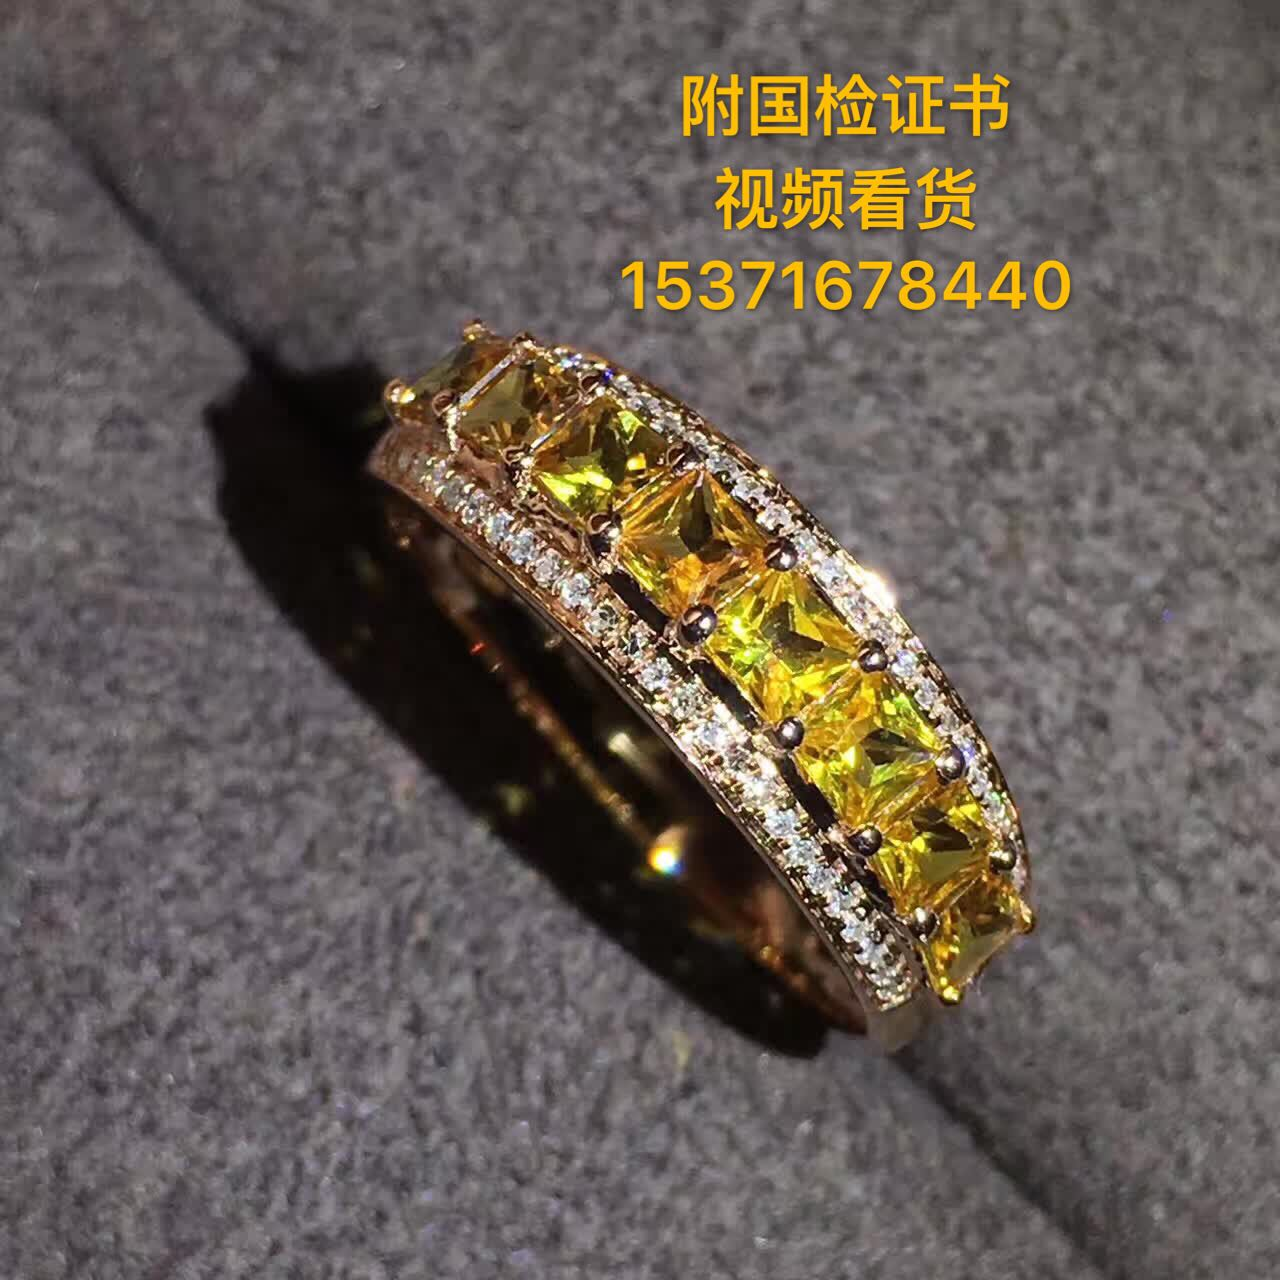 Yellow sapphire row ring monopoly 18K gold inlay pure natural with certificate